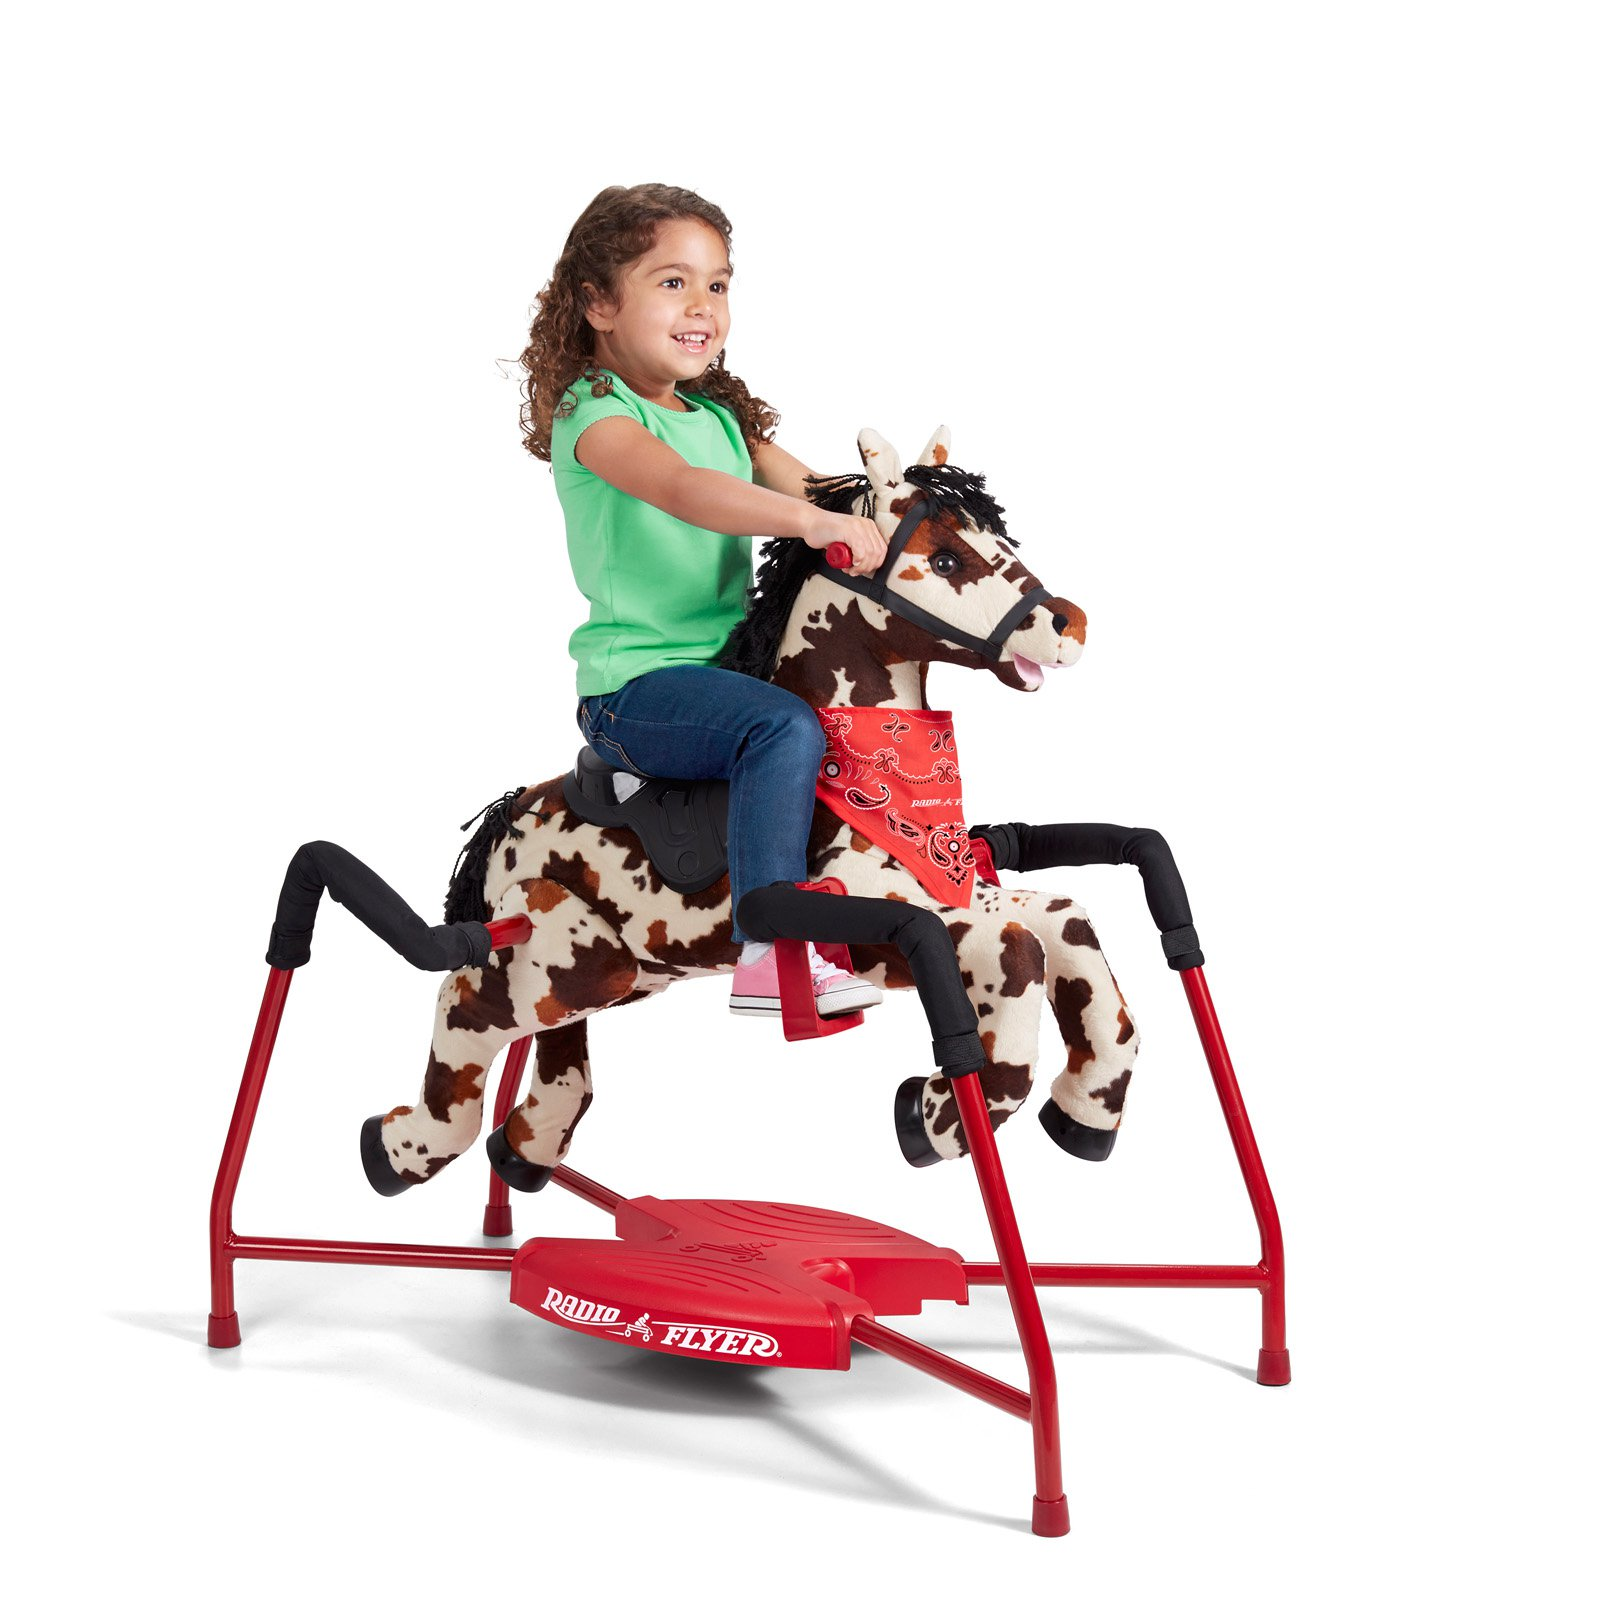 Radio Flyer Freckles Plush Interactive Riding Horse by Radio Flyer Inc